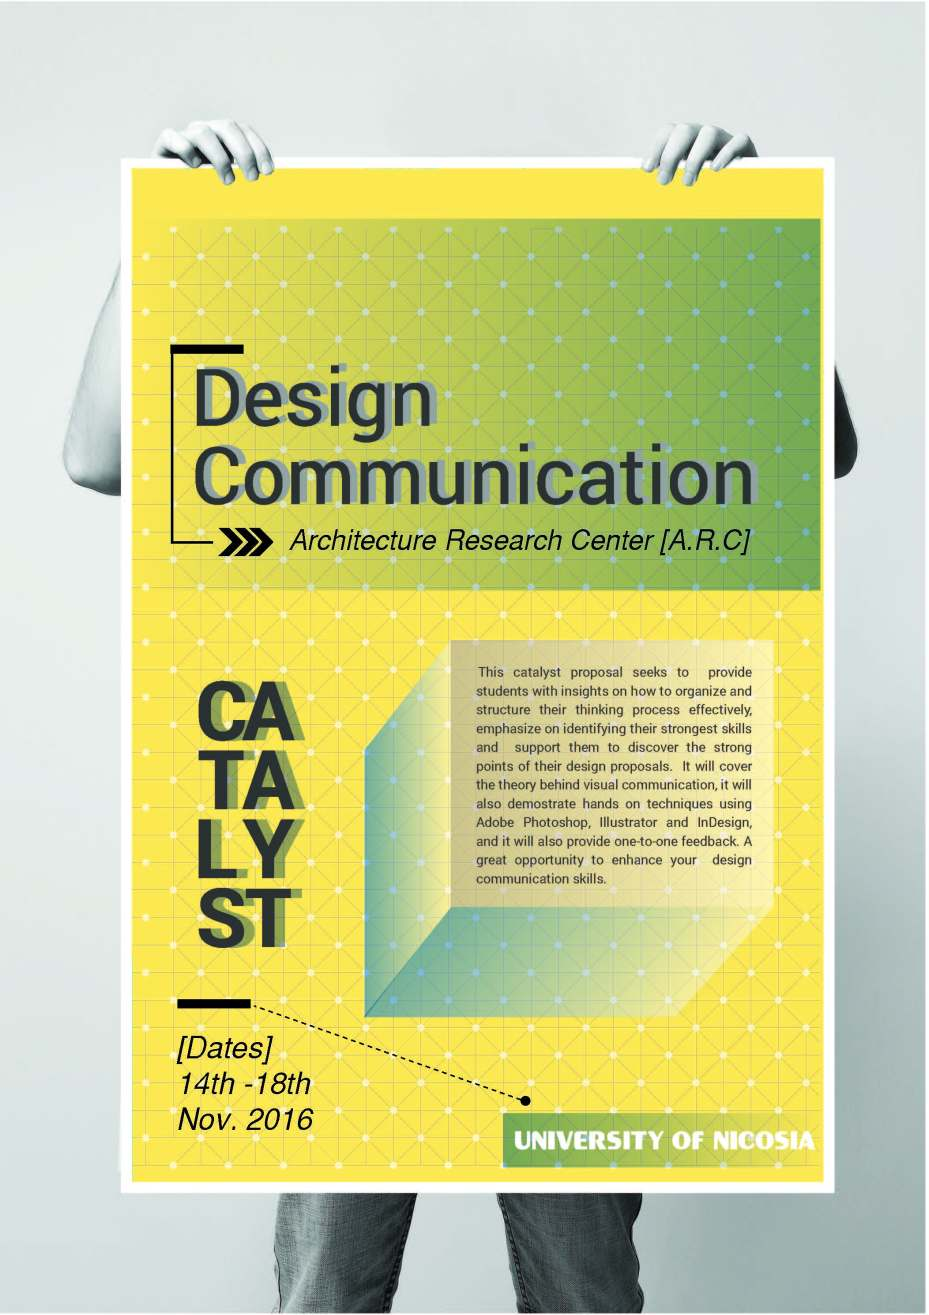 Catalyst_Design Communication Poster.jpg